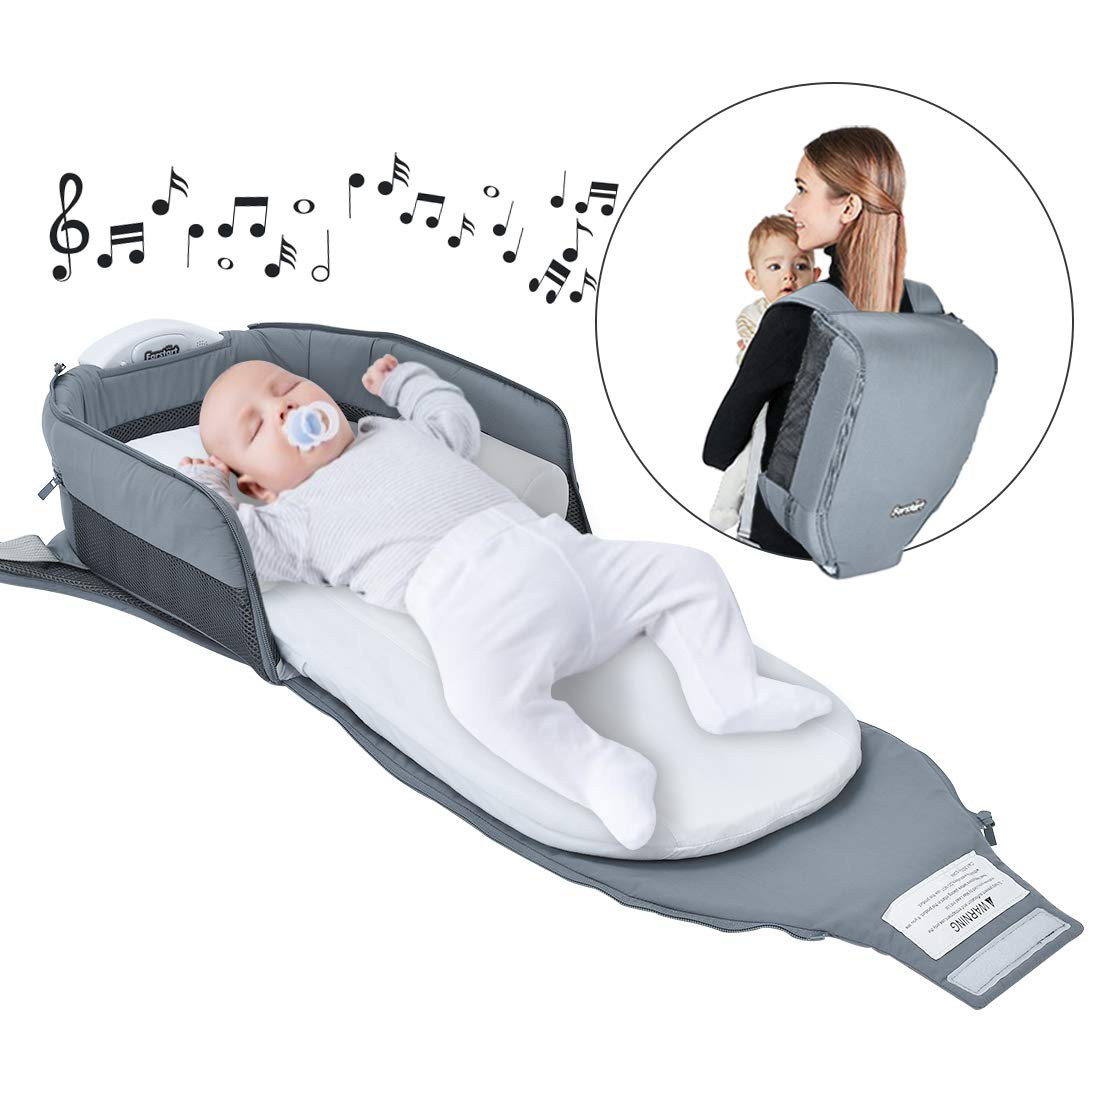 4 in 1 | Portable Bassinet | Foldable Baby Bed | with Light and Music Baby Lounger Travel Crib Infant